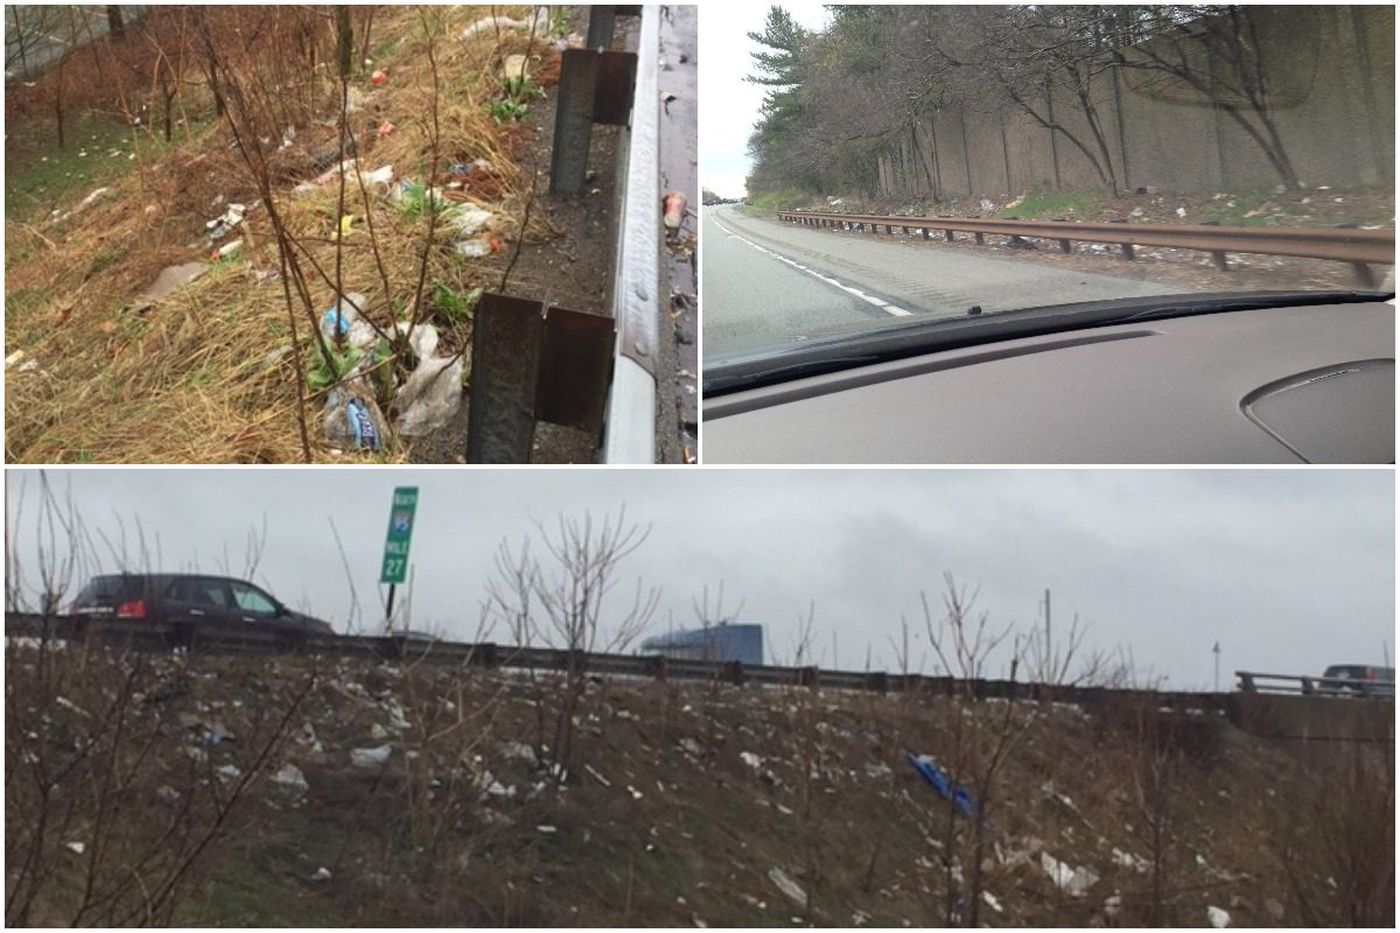 Philly's trashy highways have PennDot spending half its cleanup budget on our five counties